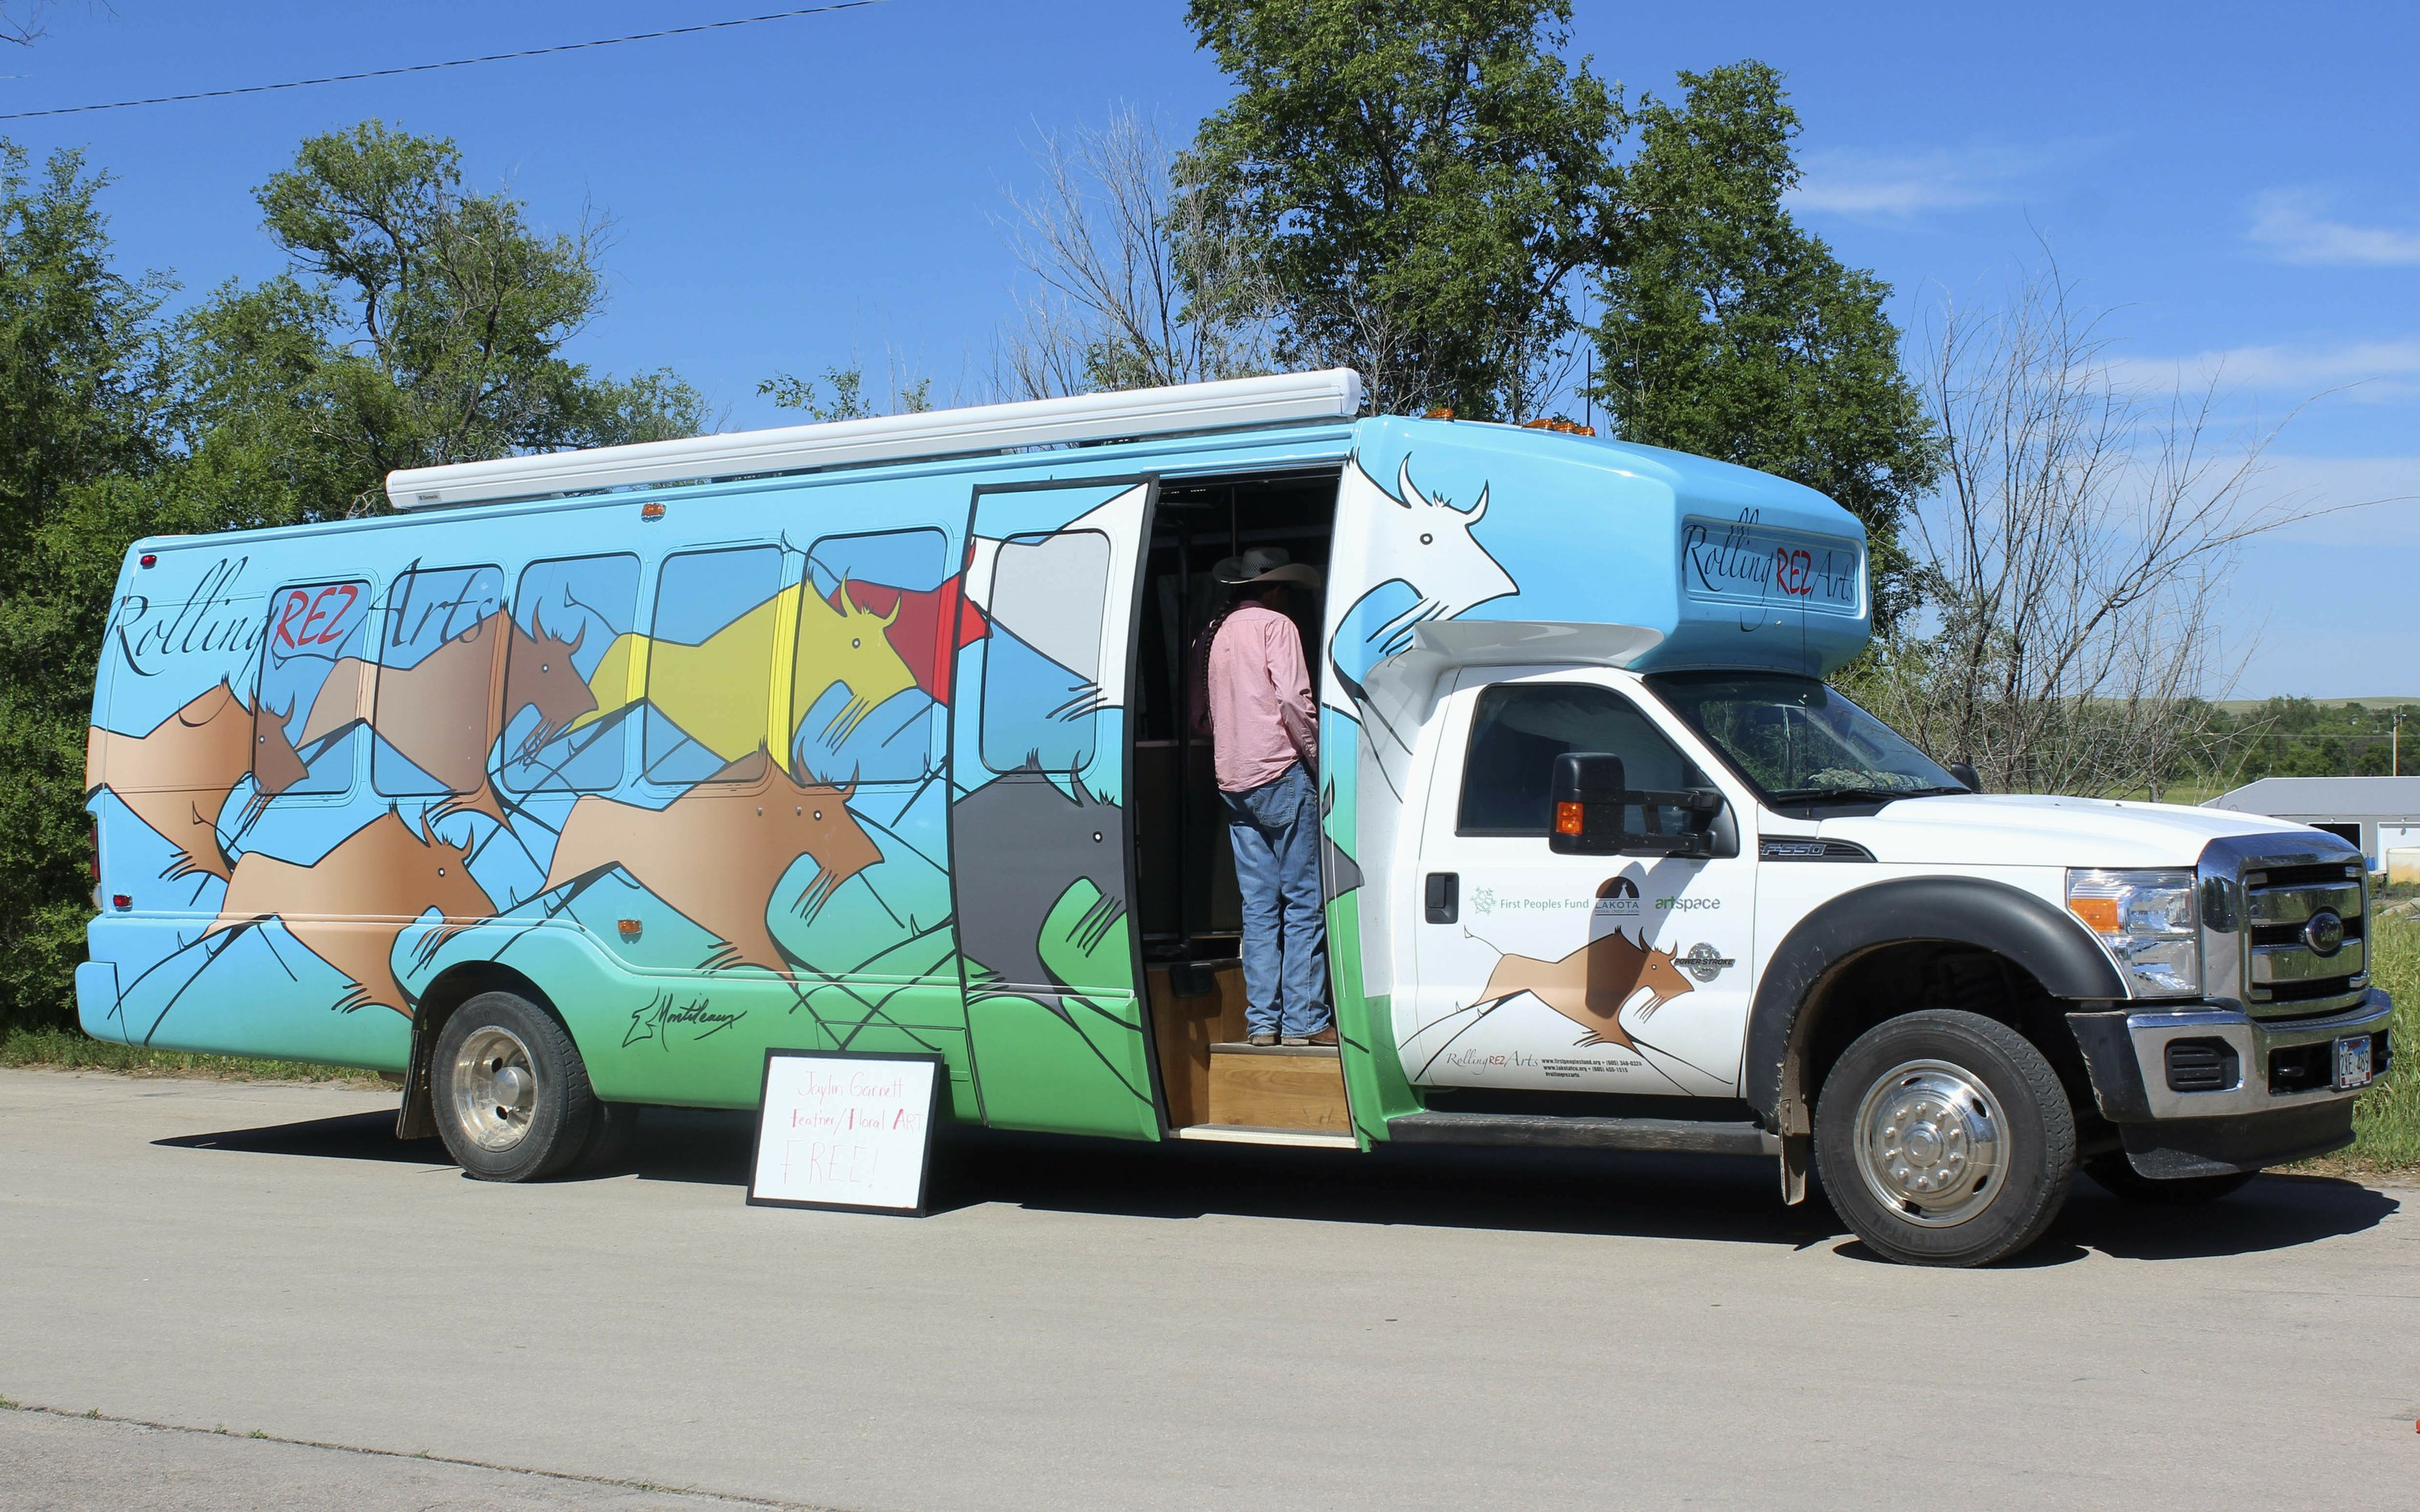 Retrofitted bus provides studio for Native American artists